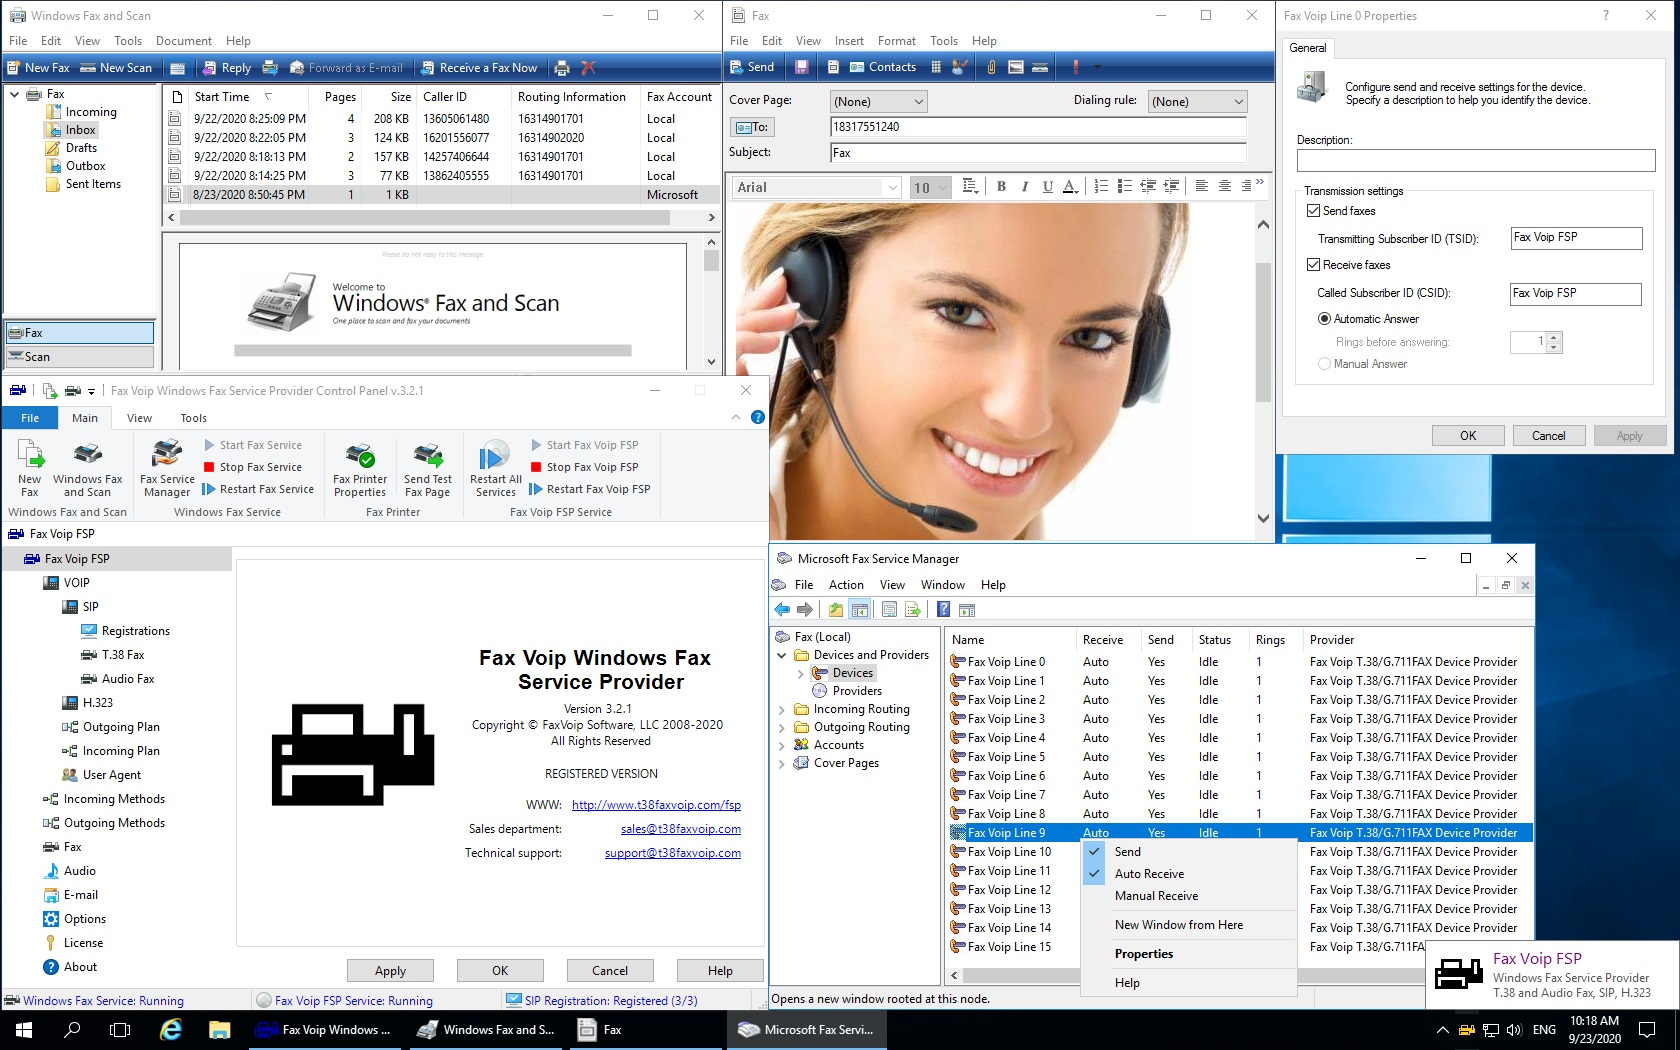 Fax Voip Windows Fax Service Provider screenshot